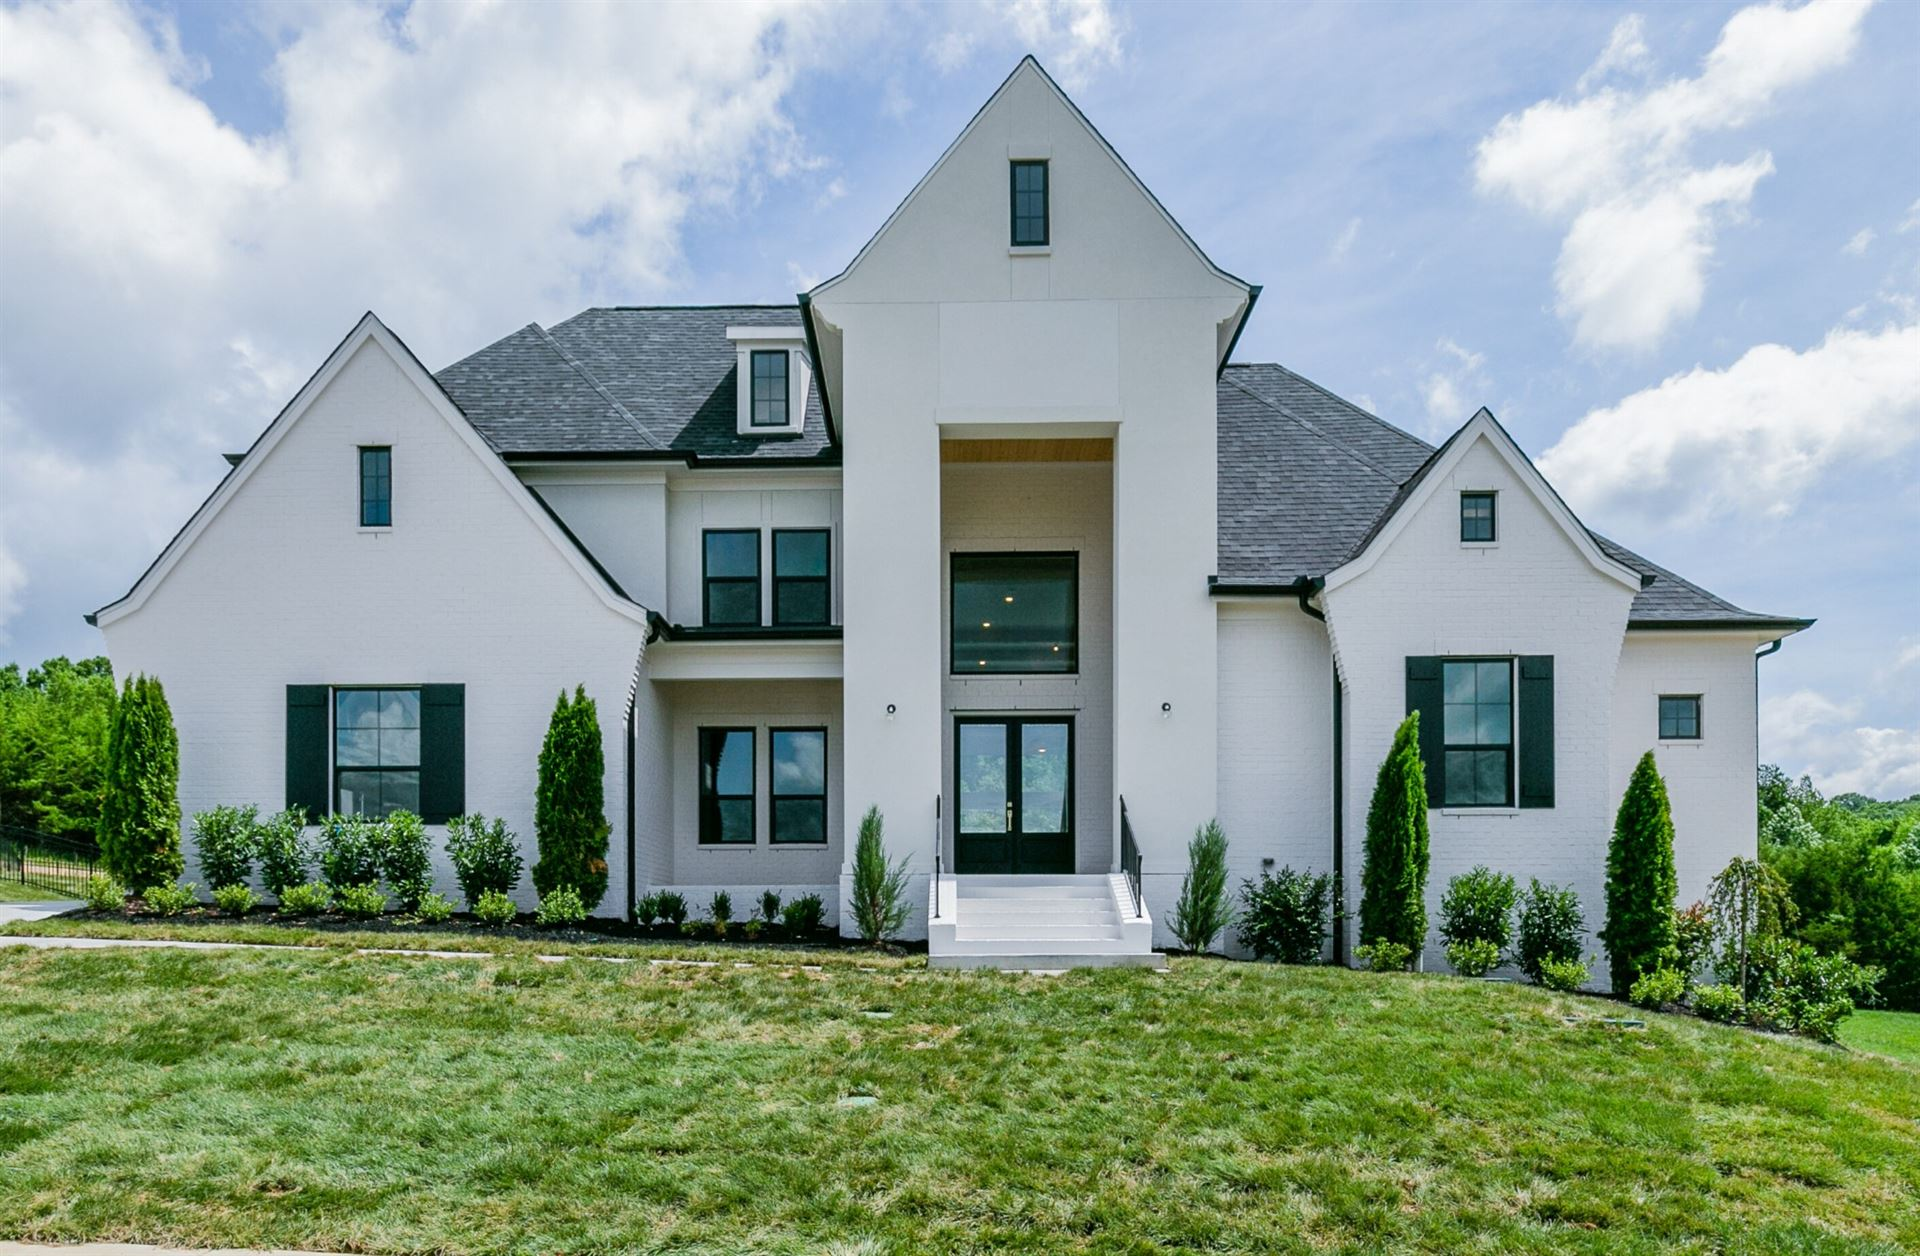 Photo of 1004 Heights Blvd, Brentwood, TN 37027 (MLS # 2236130)